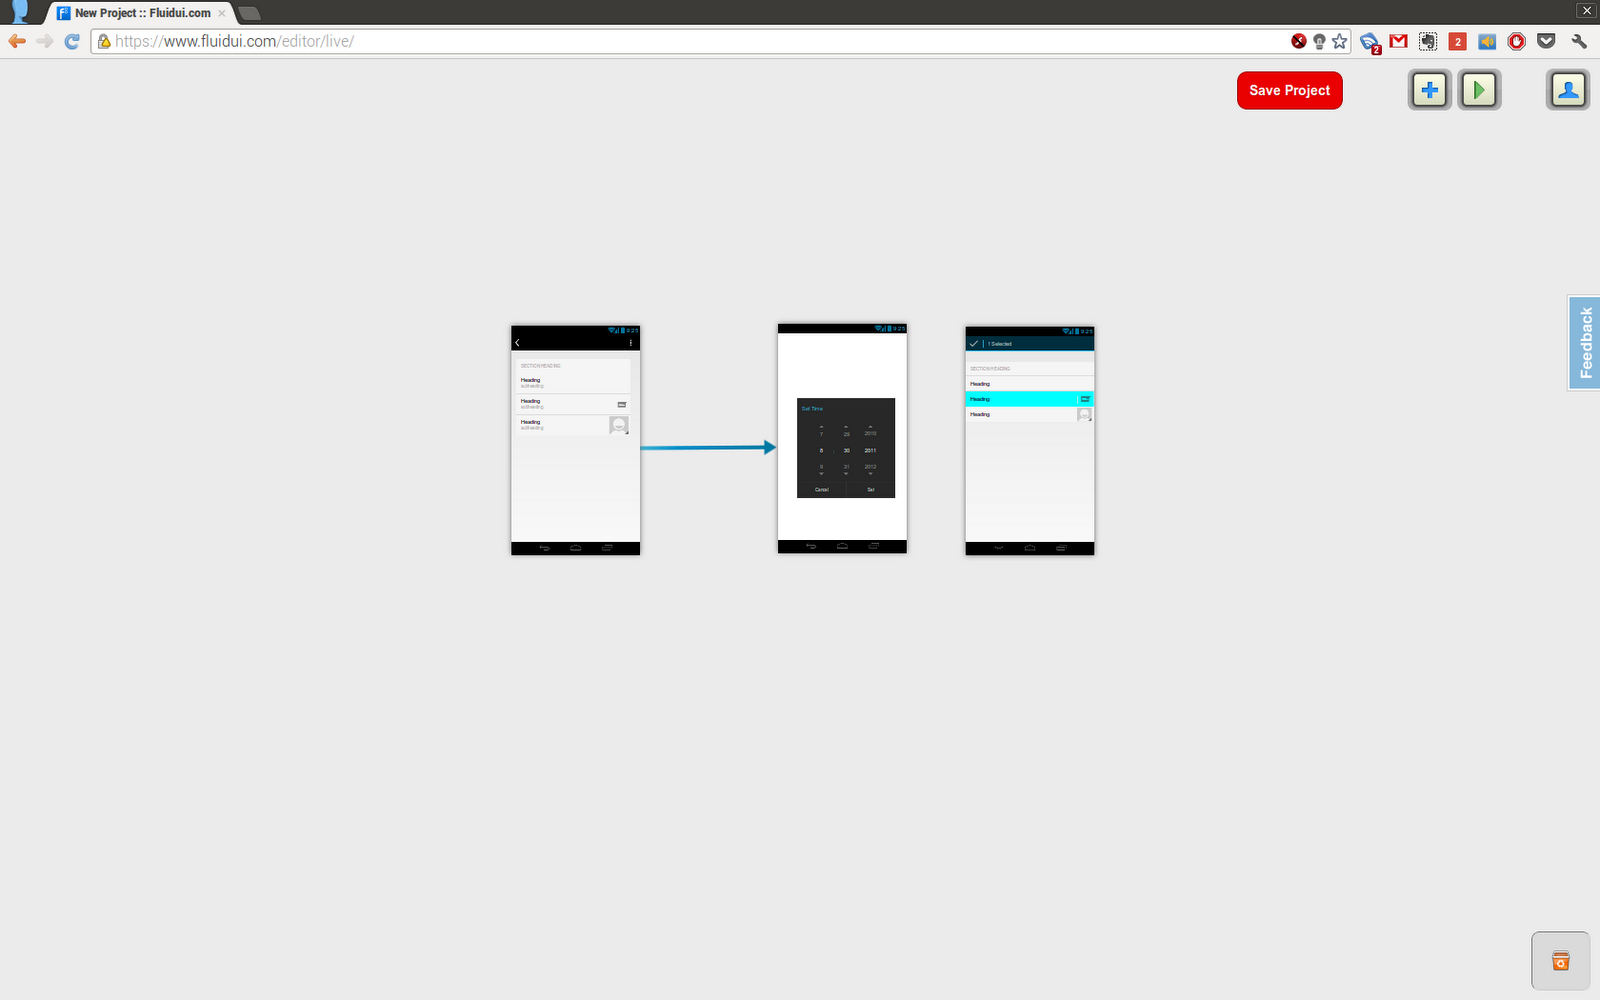 Fluid UI - Wireframing for Android - DZone Java